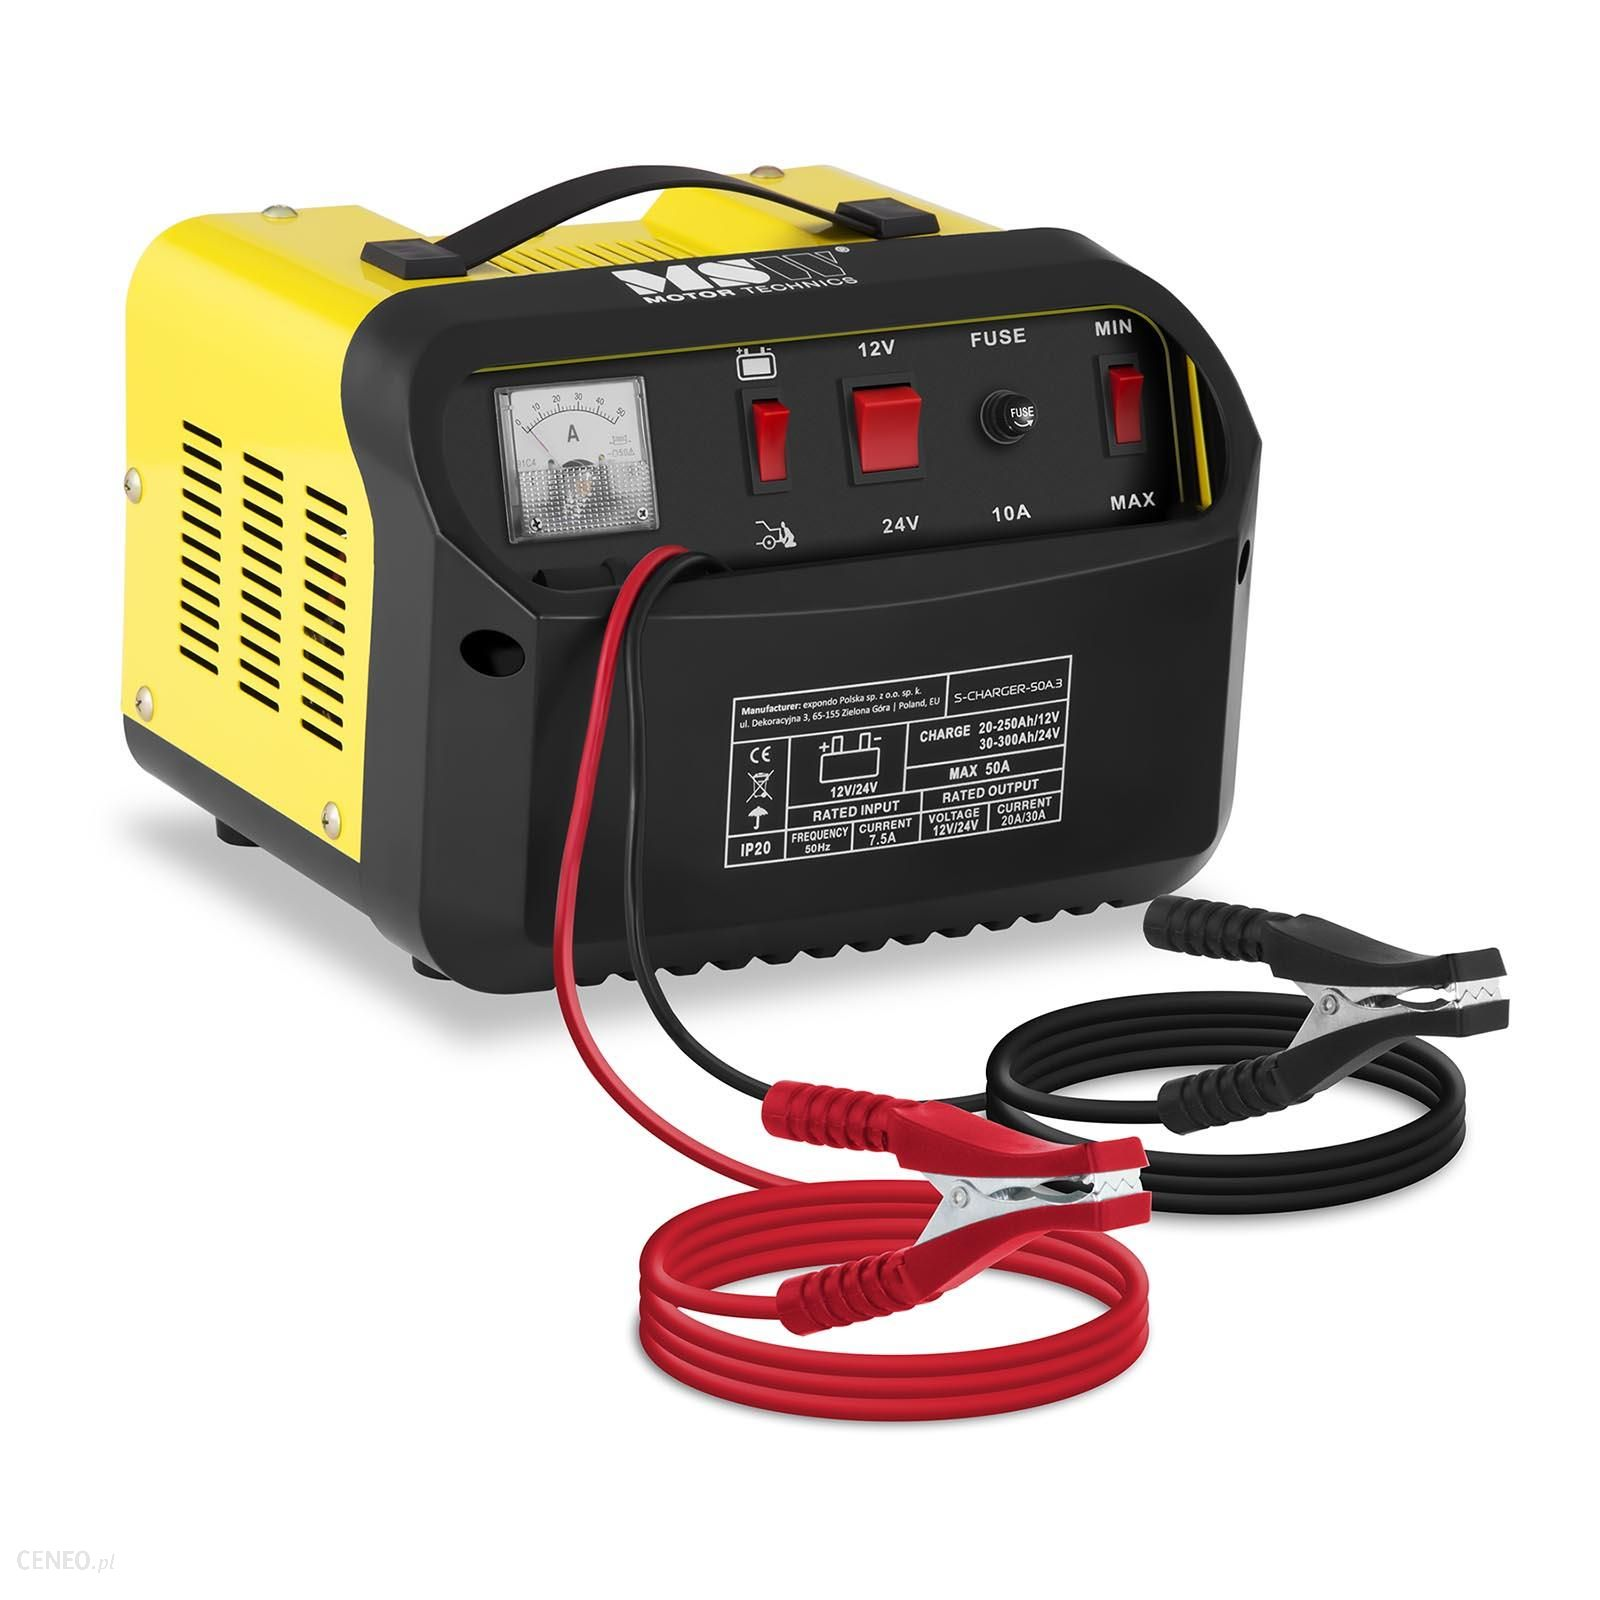 msw Prostownik 1224V 30A rozruch 130A S-CHARGER-50A.3